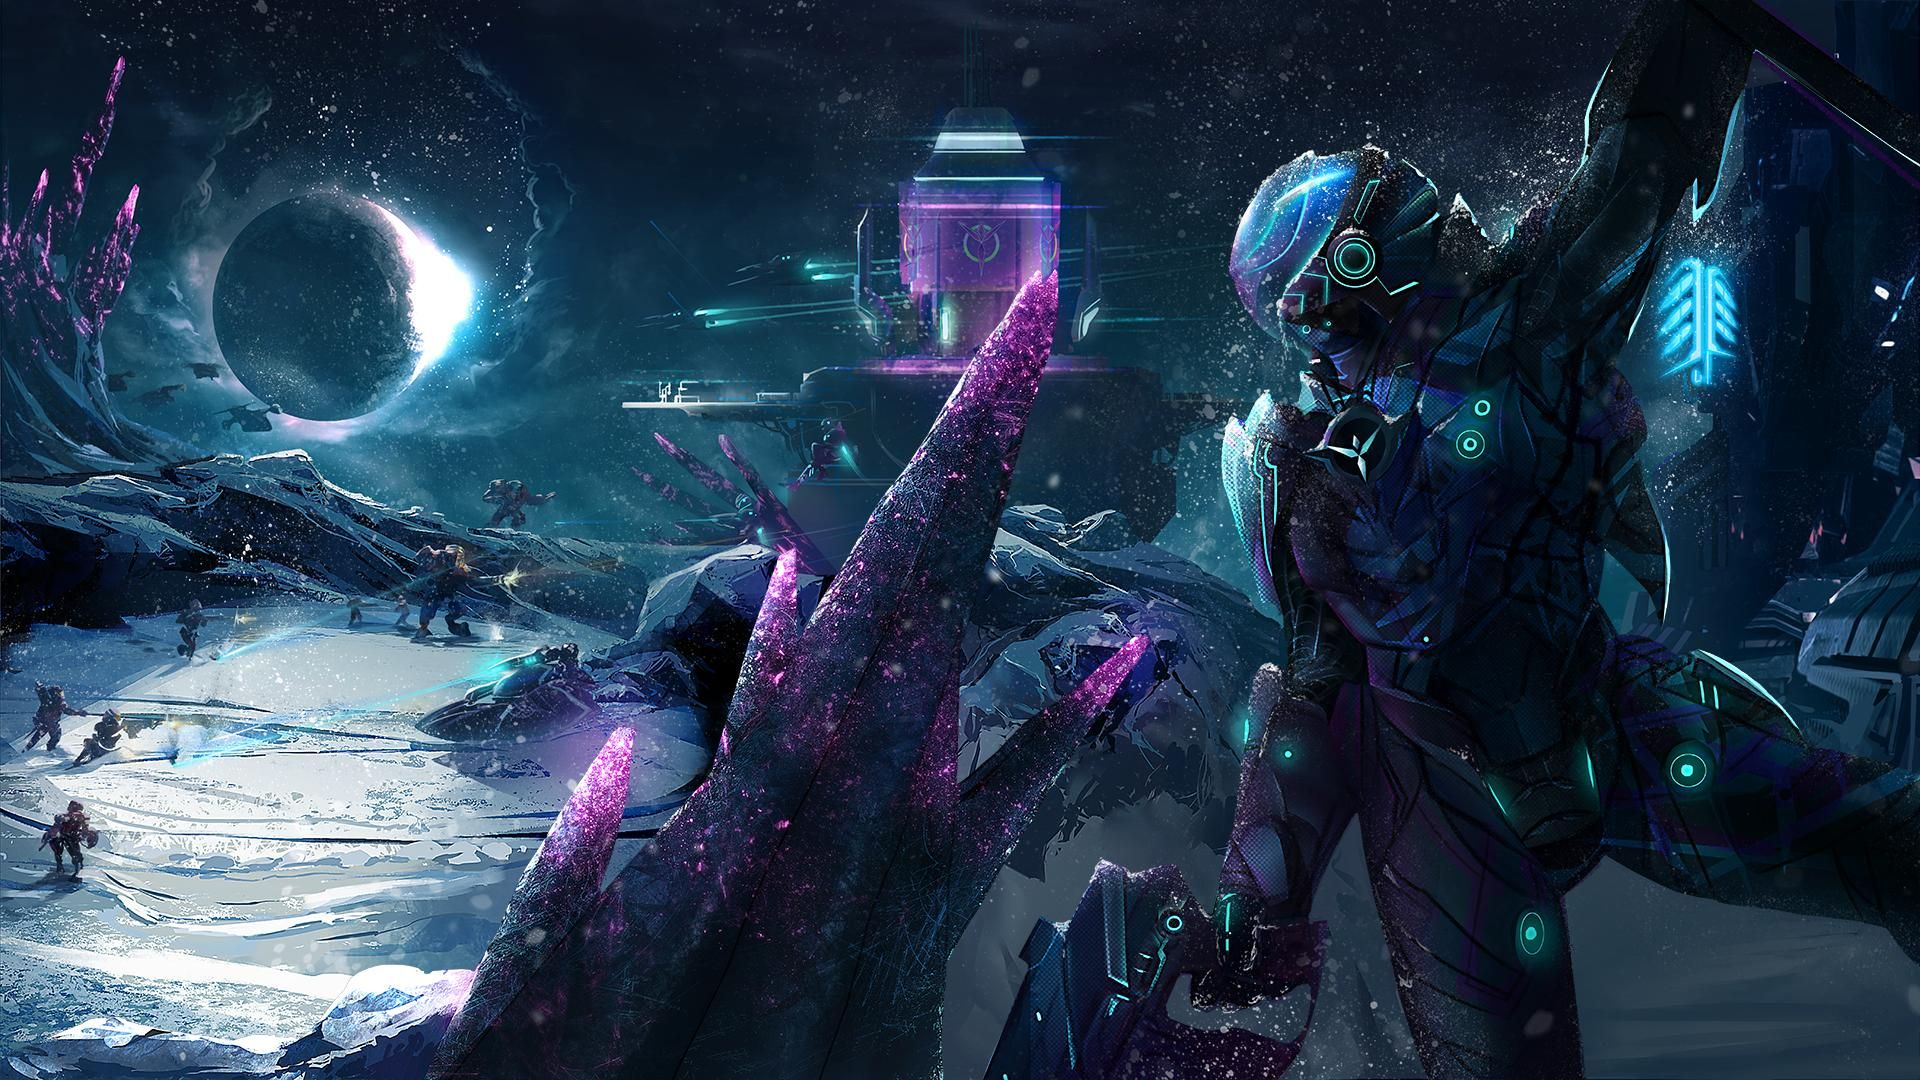 It S Going To Be A Long Night Planetside 2 Fanart Gaming Wallpapers Futuristic Concept Art 4k Gaming Wallpaper Epic ultra hd gaming wallpaper 4k